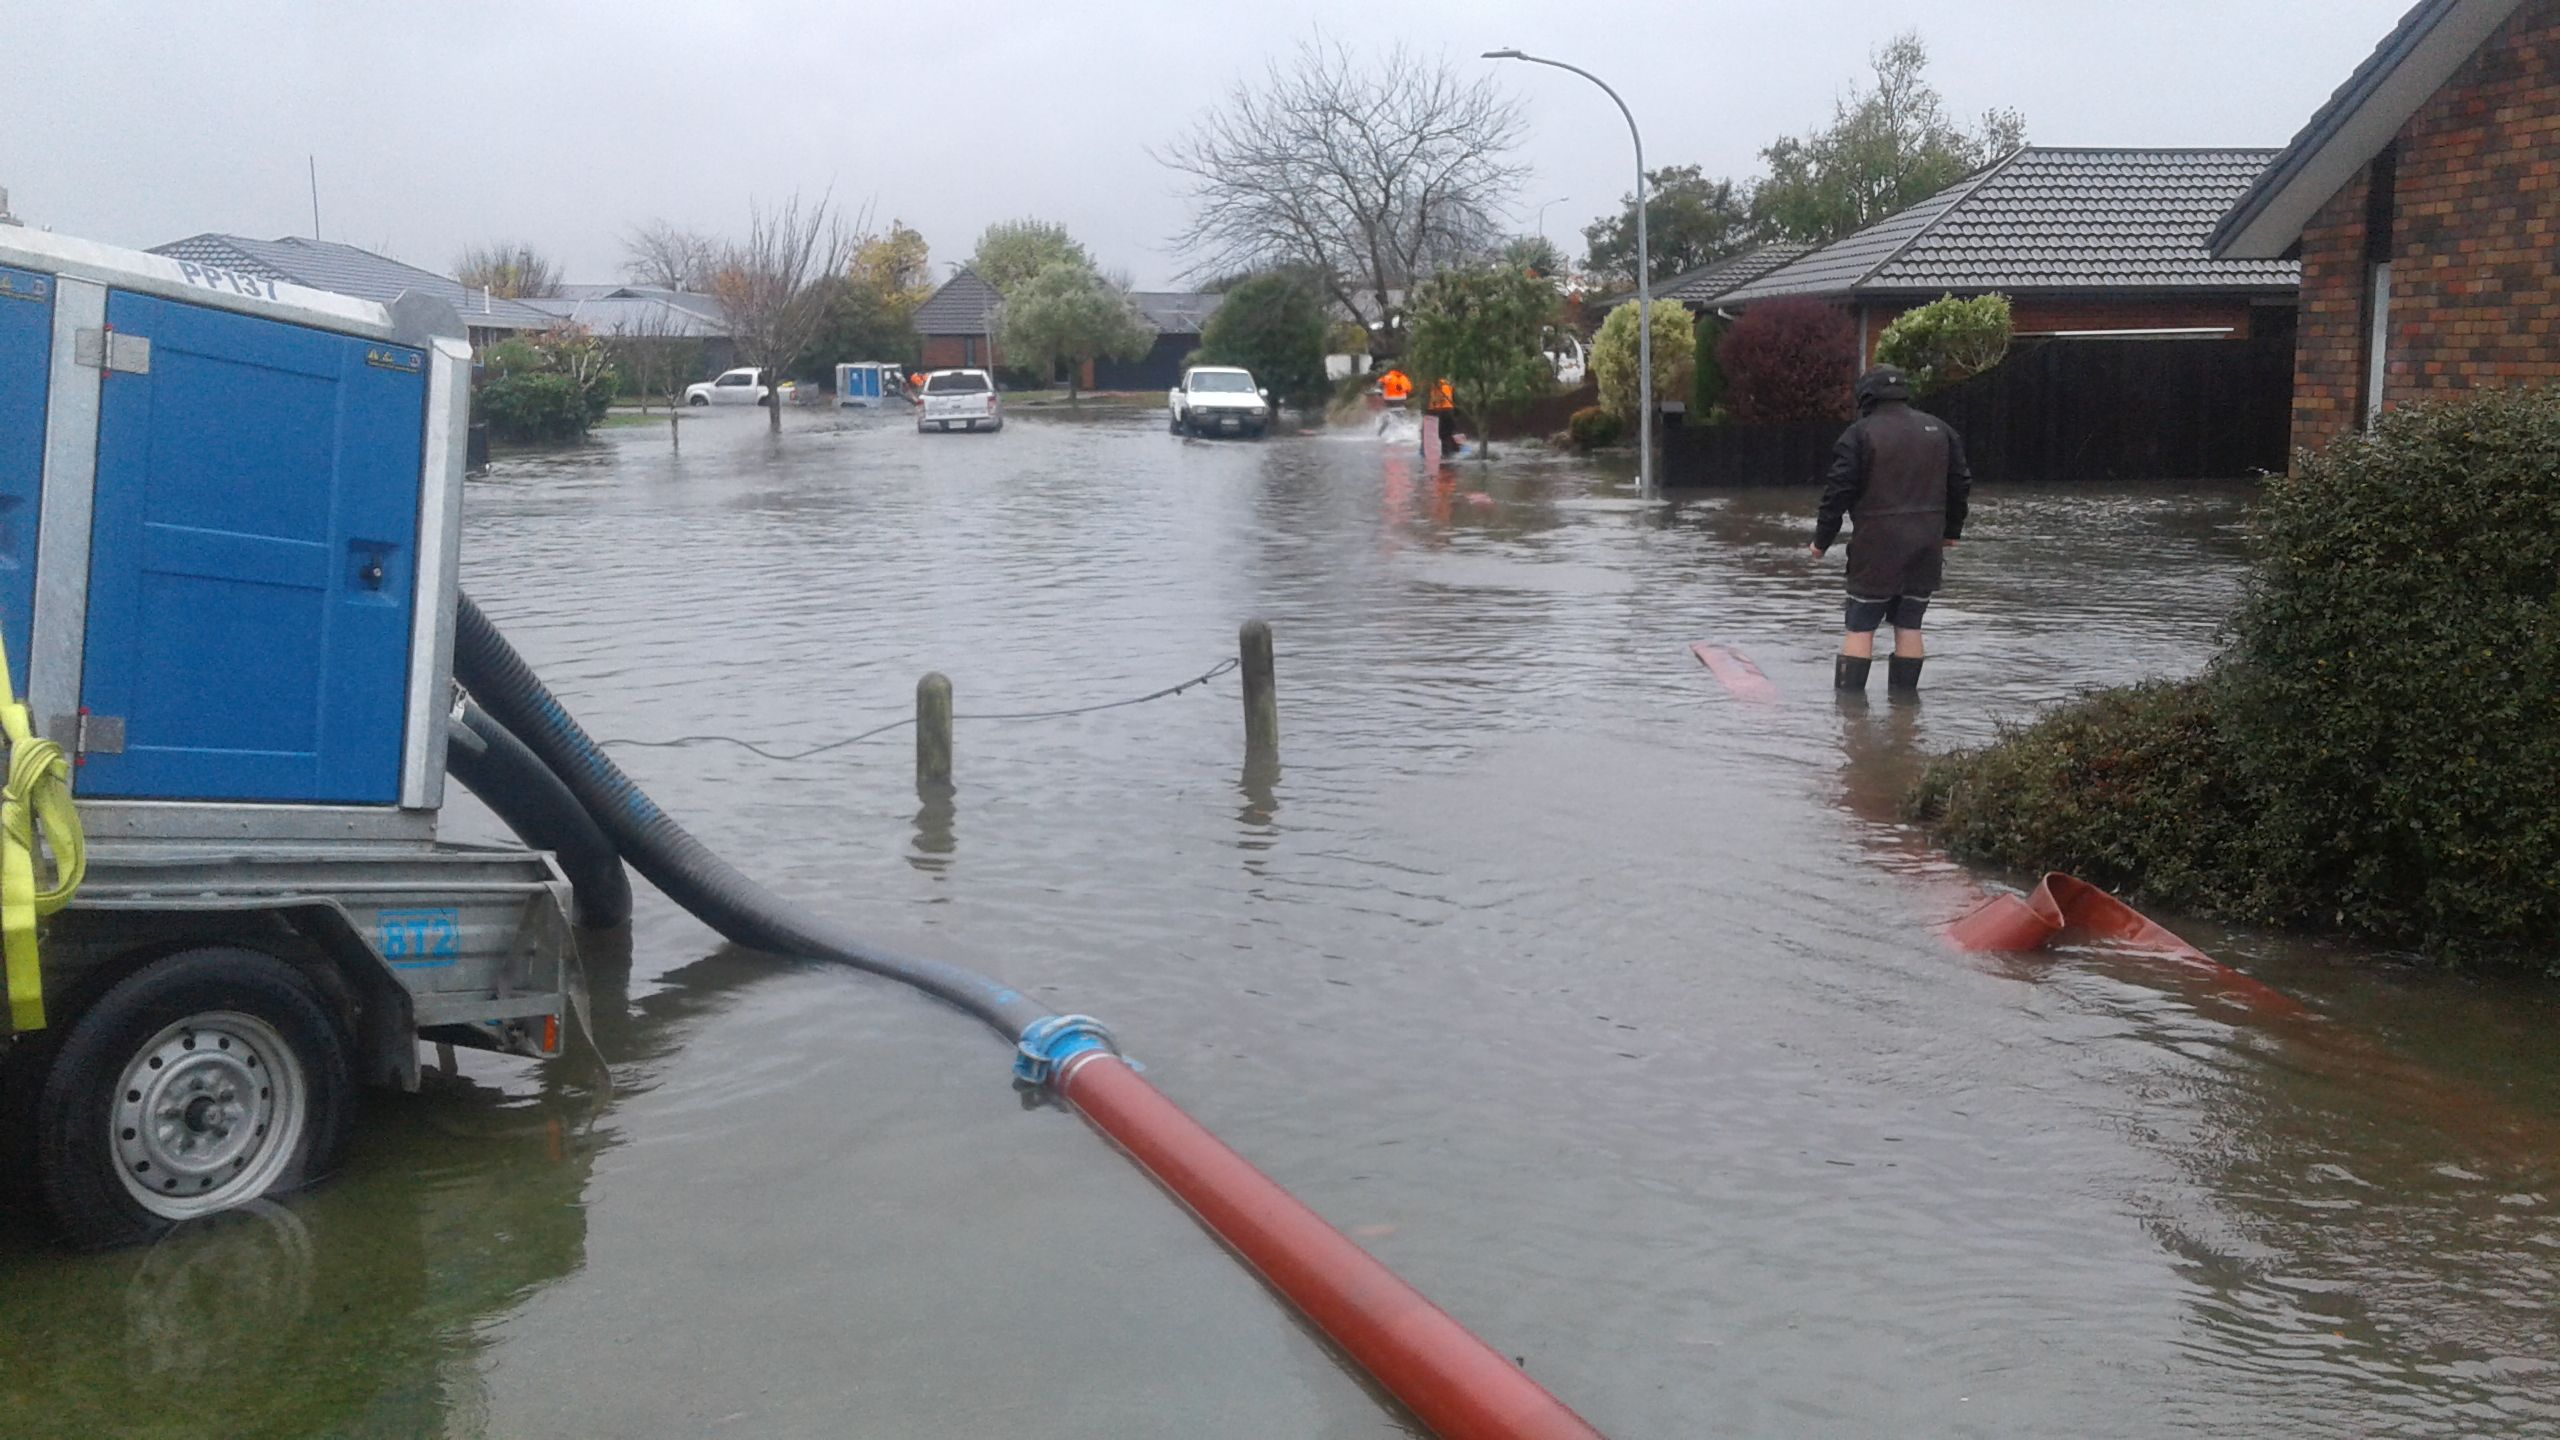 Image of the flooding in Kiln Place, Kaiapoi, June 2019